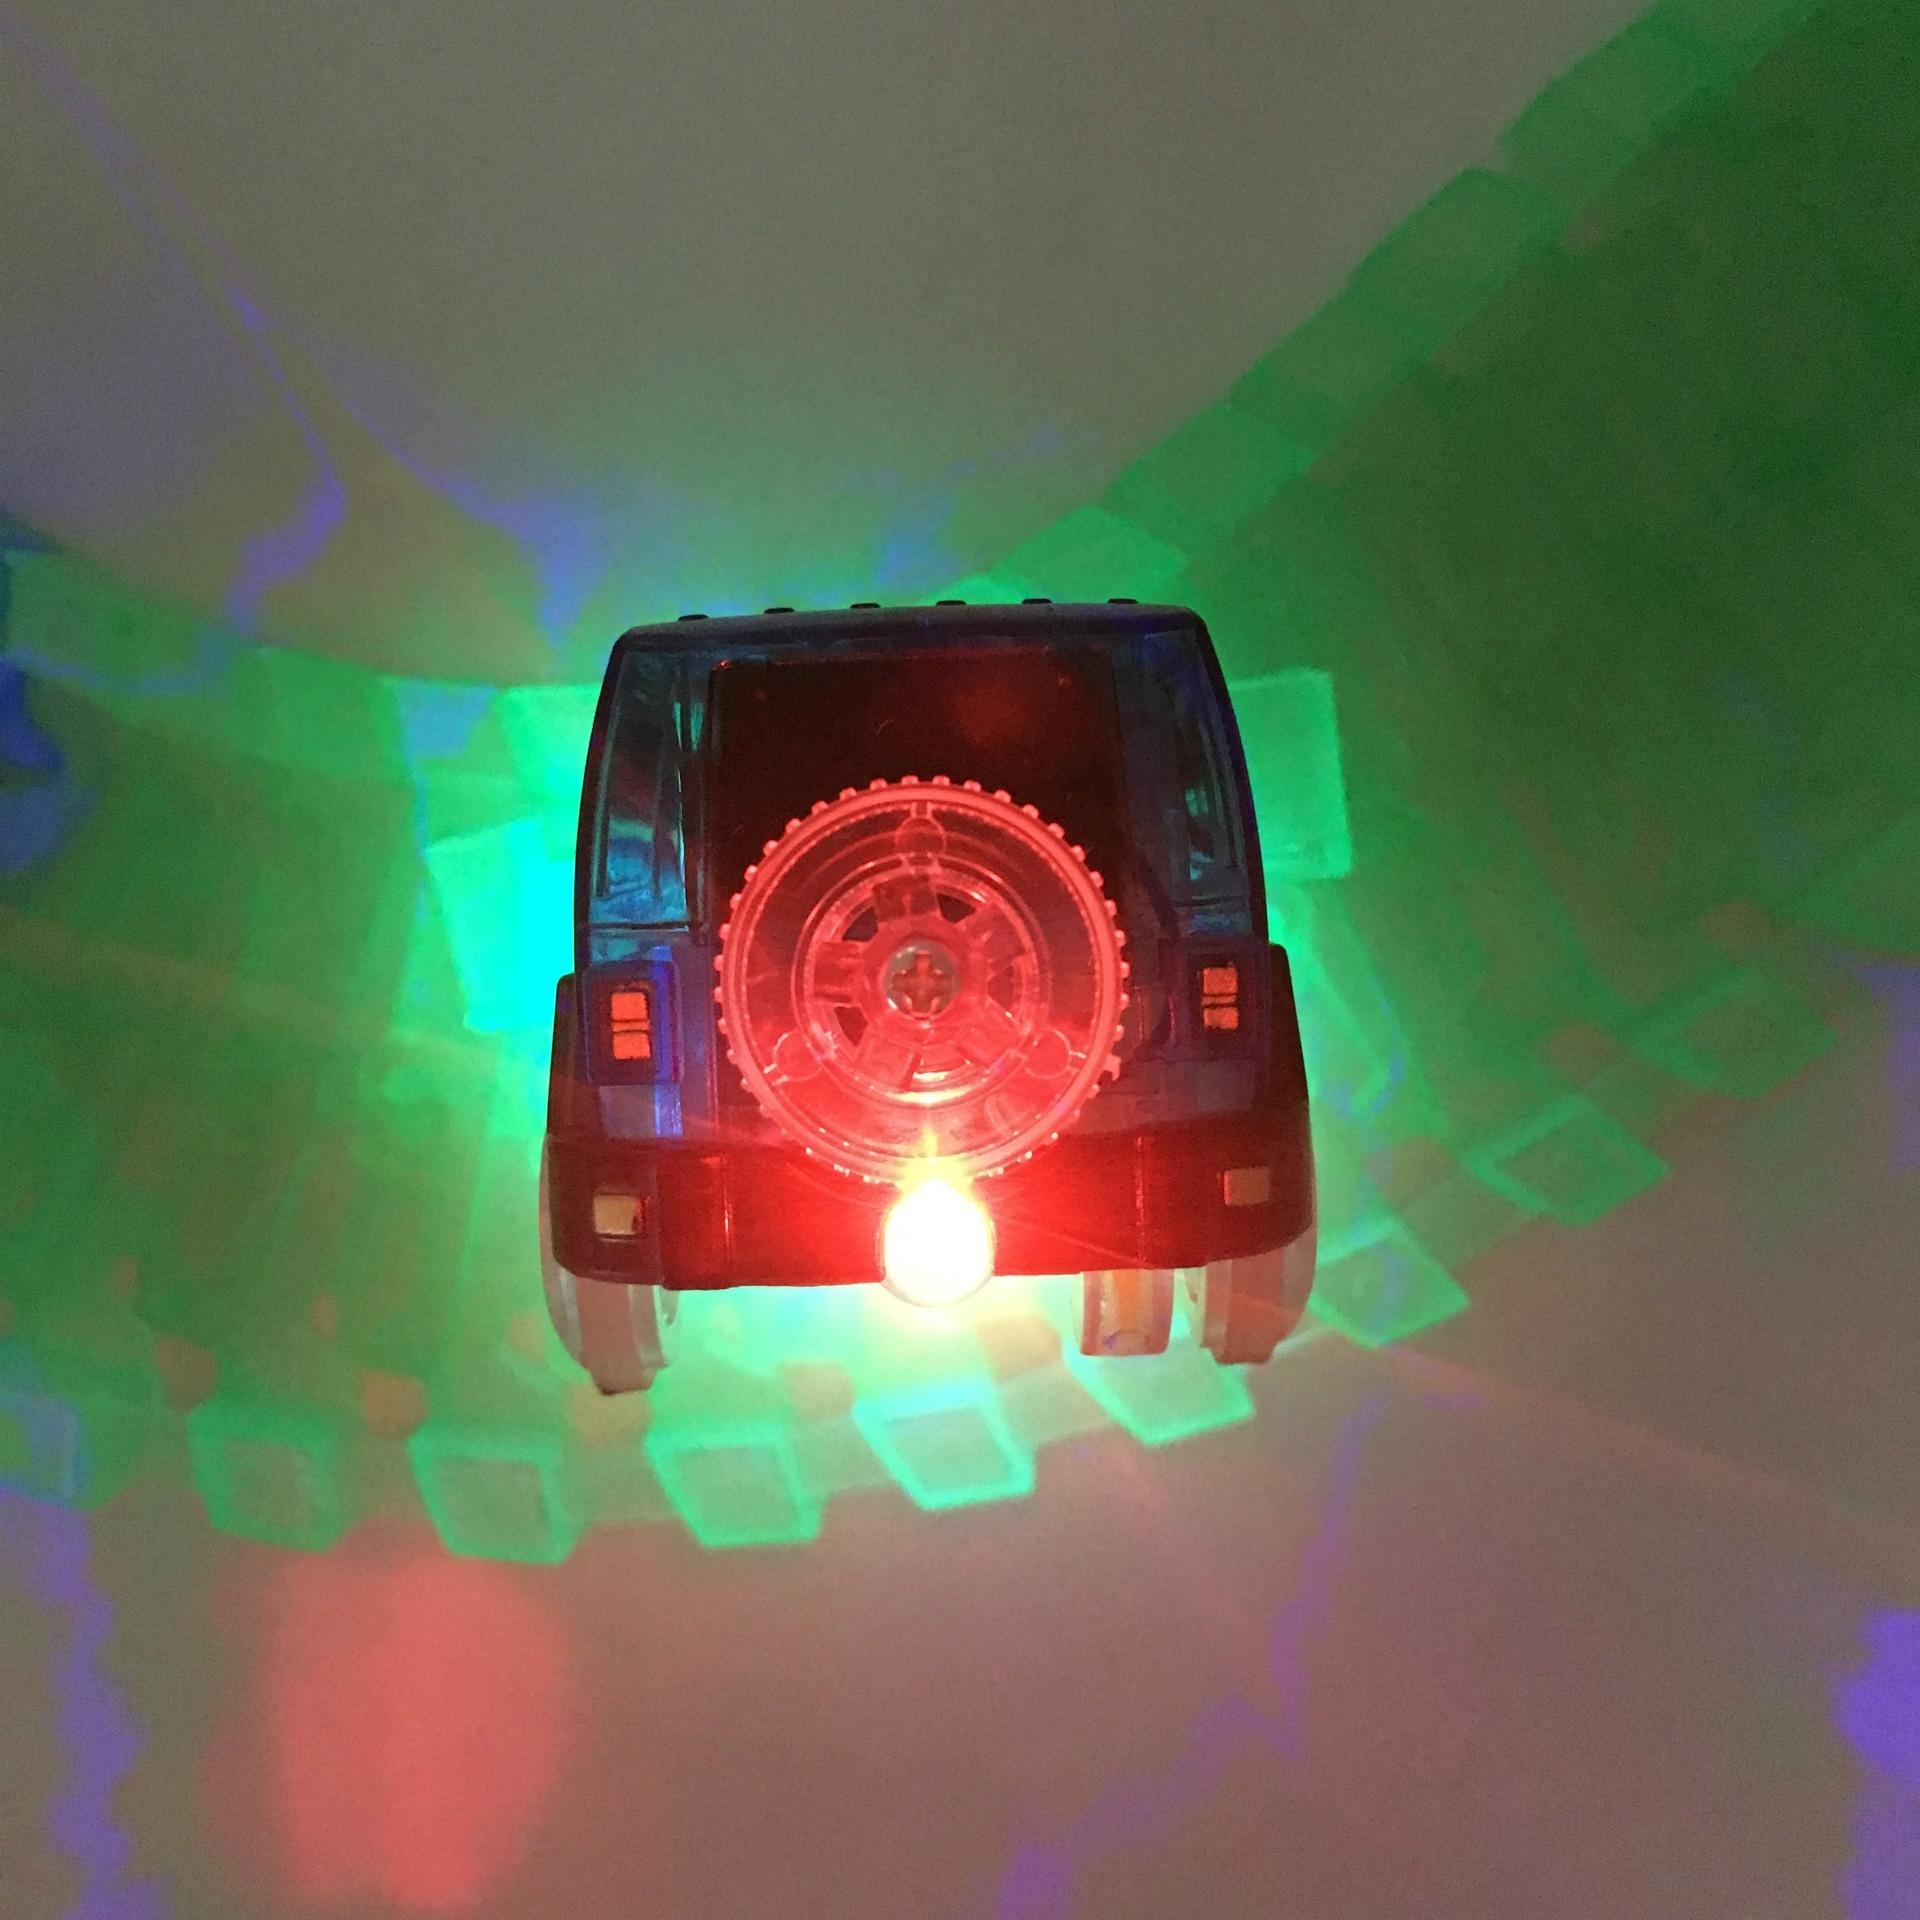 Image 5 - LeadingStar 1Pc Children LED Electric Car Toy for Glow Tracks Shining in the Dark Amazing Racetrack Race Car(Not Include Tracks)-in Diecasts & Toy Vehicles from Toys & Hobbies